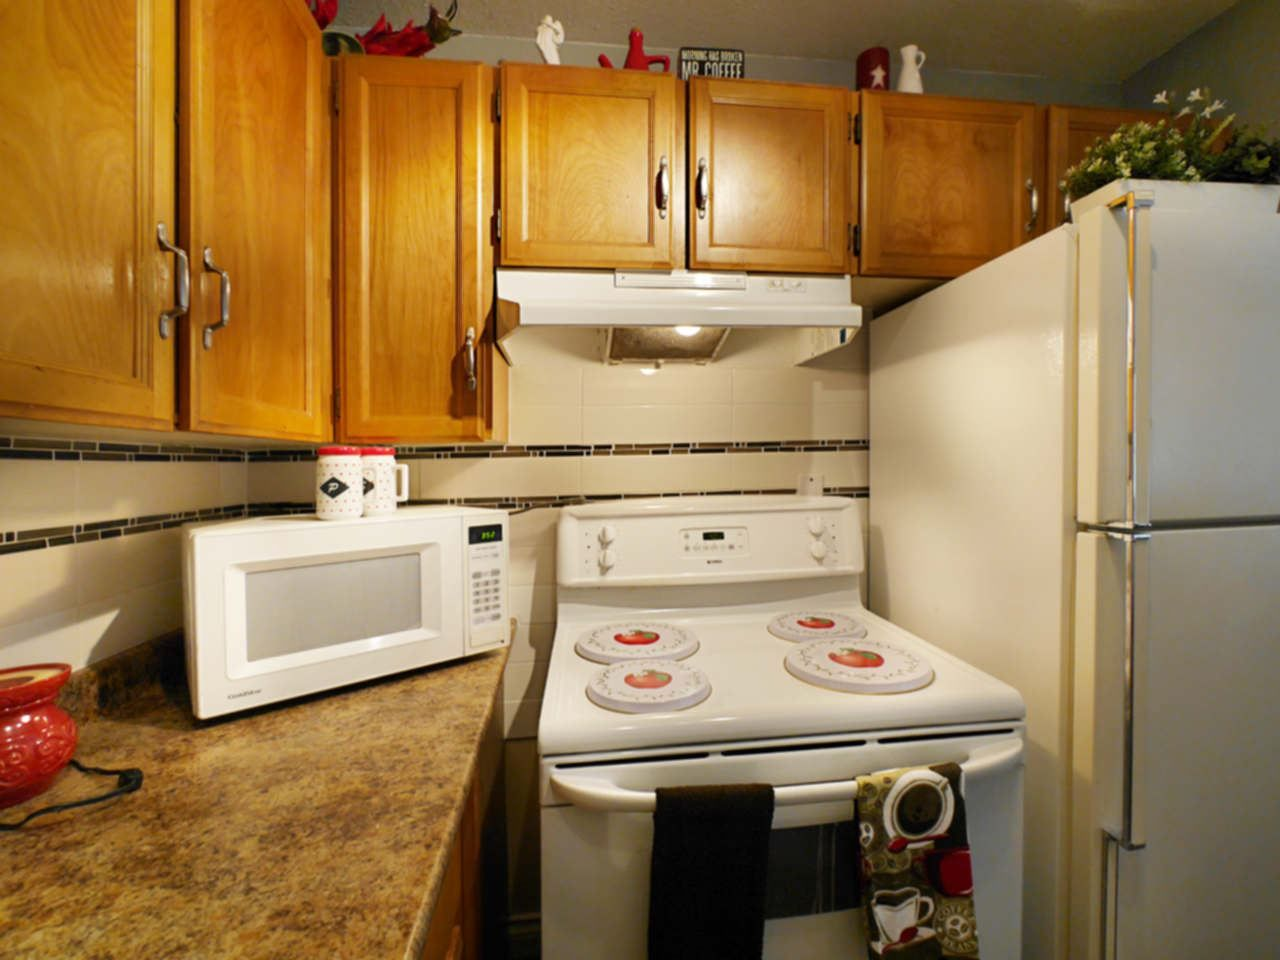 """Photo 12: Photos: 105 9952 149 Street in Surrey: Guildford Condo for sale in """"Tall Timbers"""" (North Surrey)  : MLS®# R2107429"""